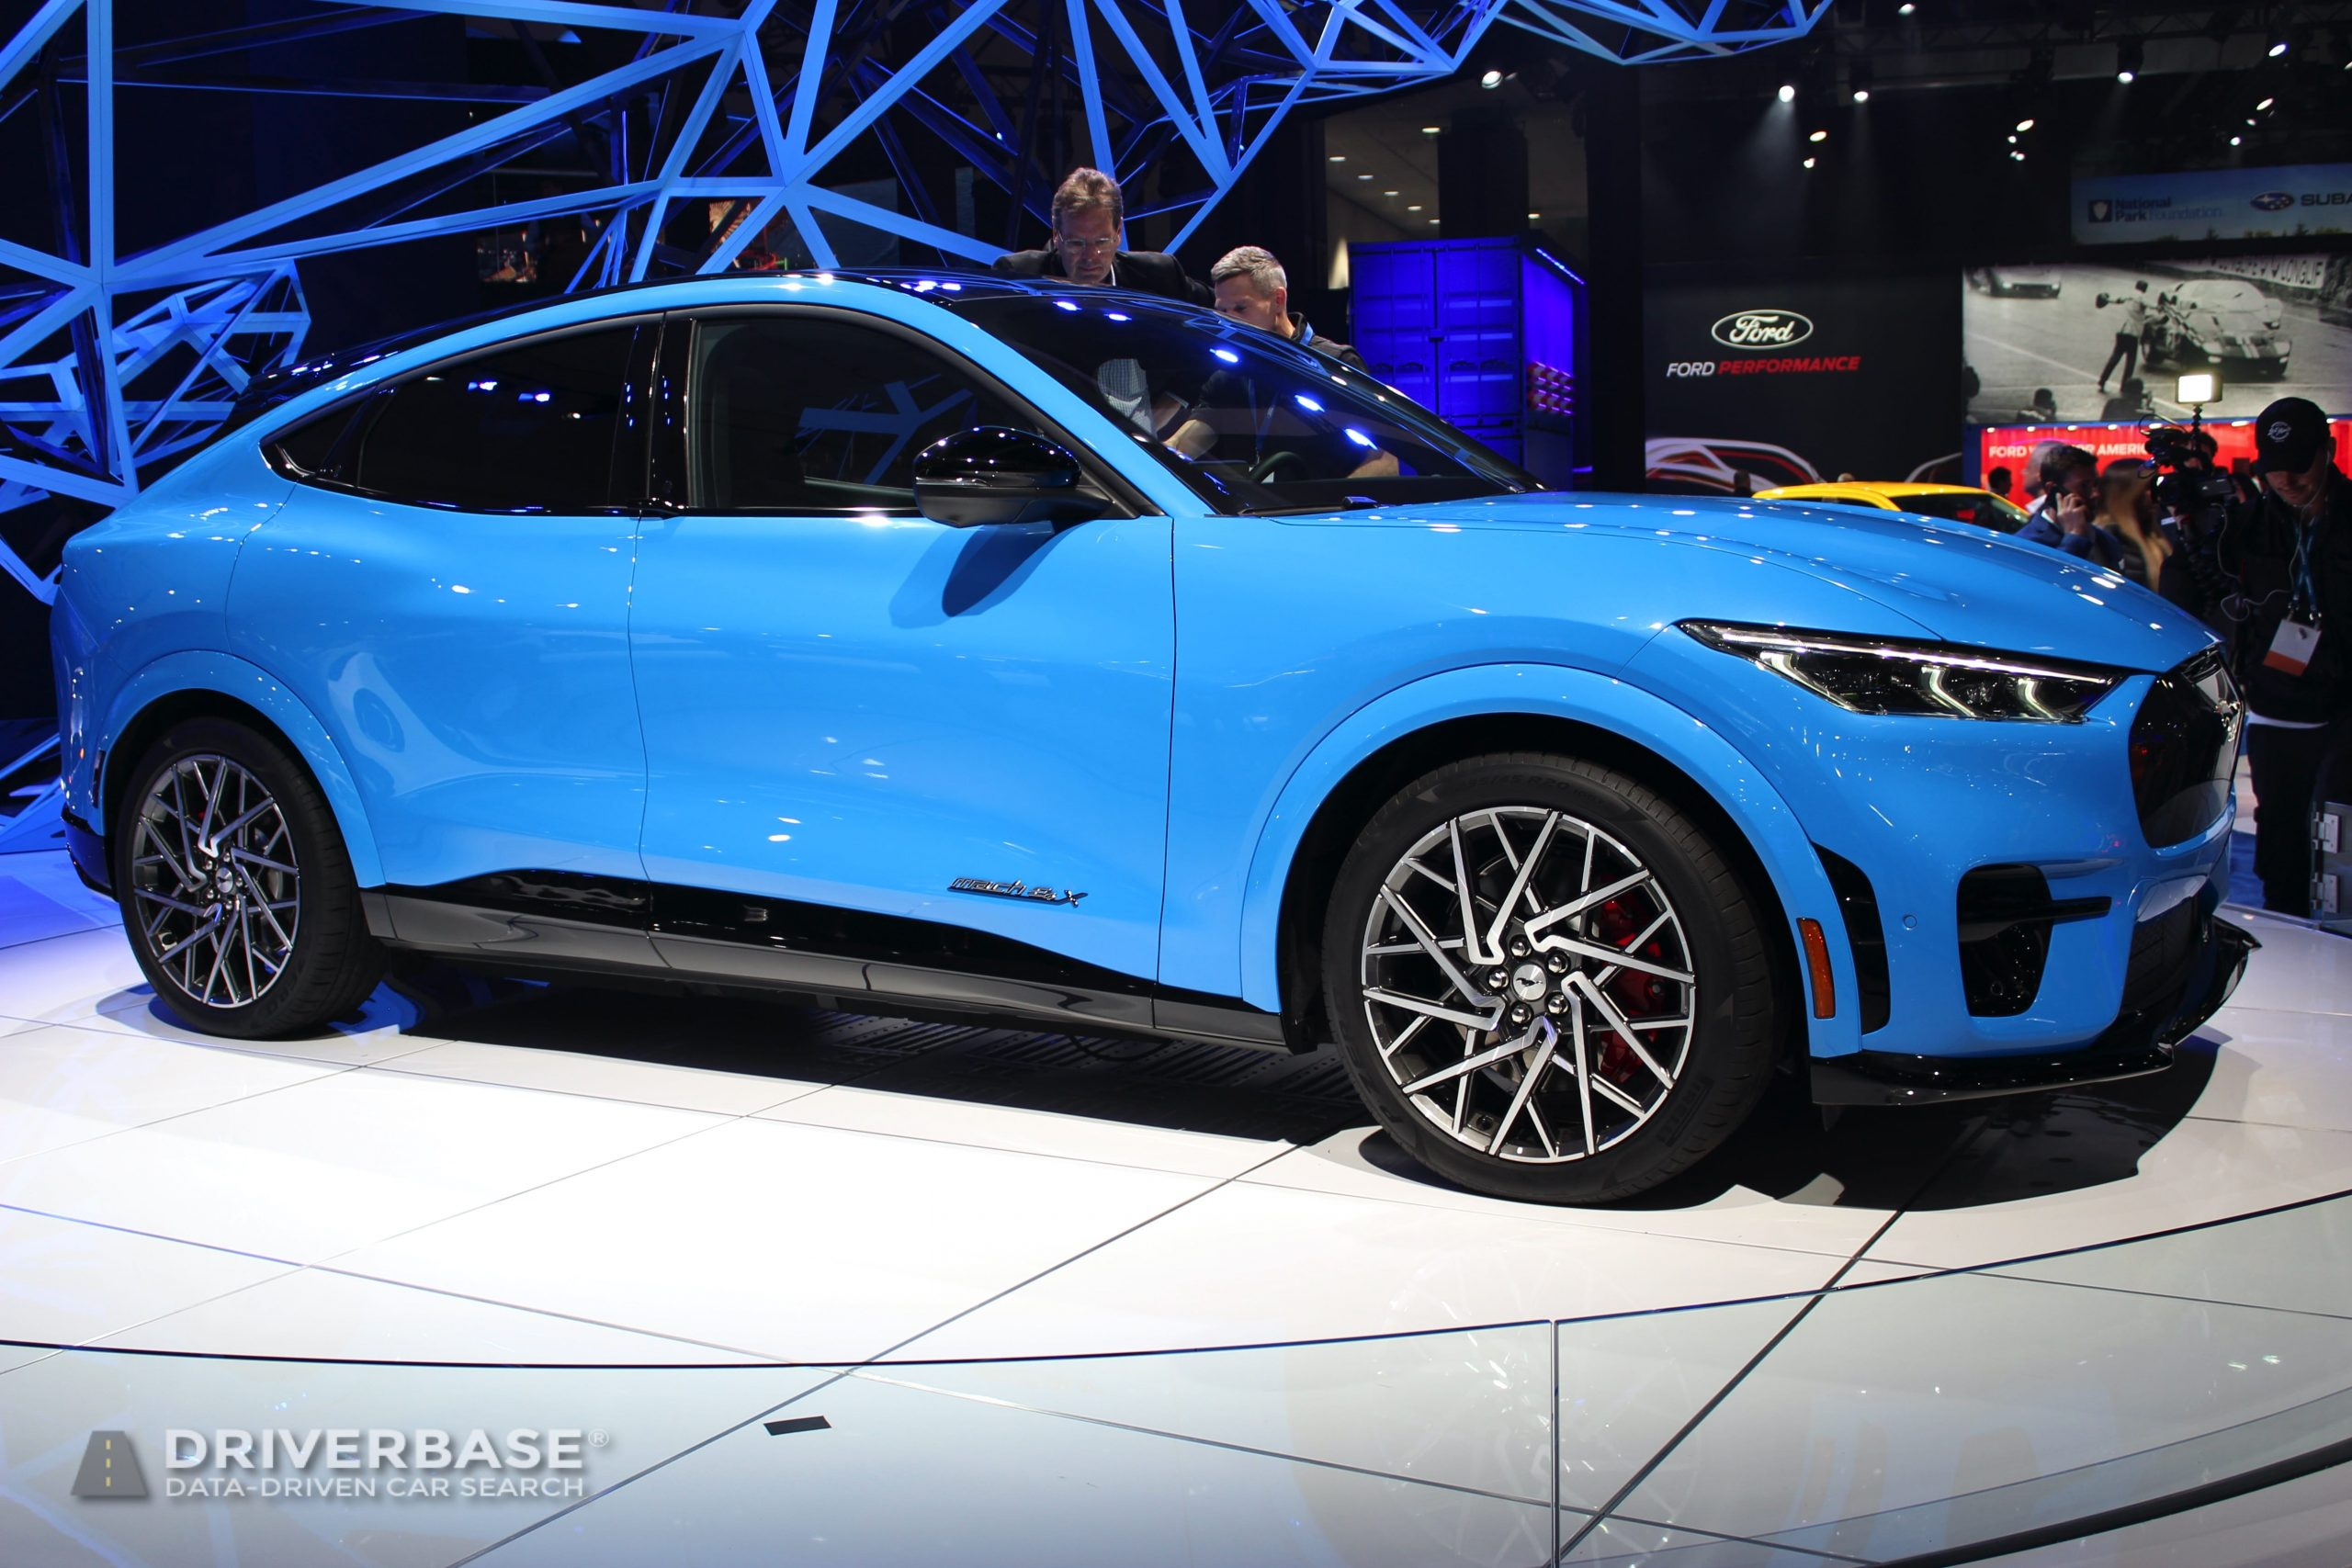 2021 Ford Mustang Electric Suv Price